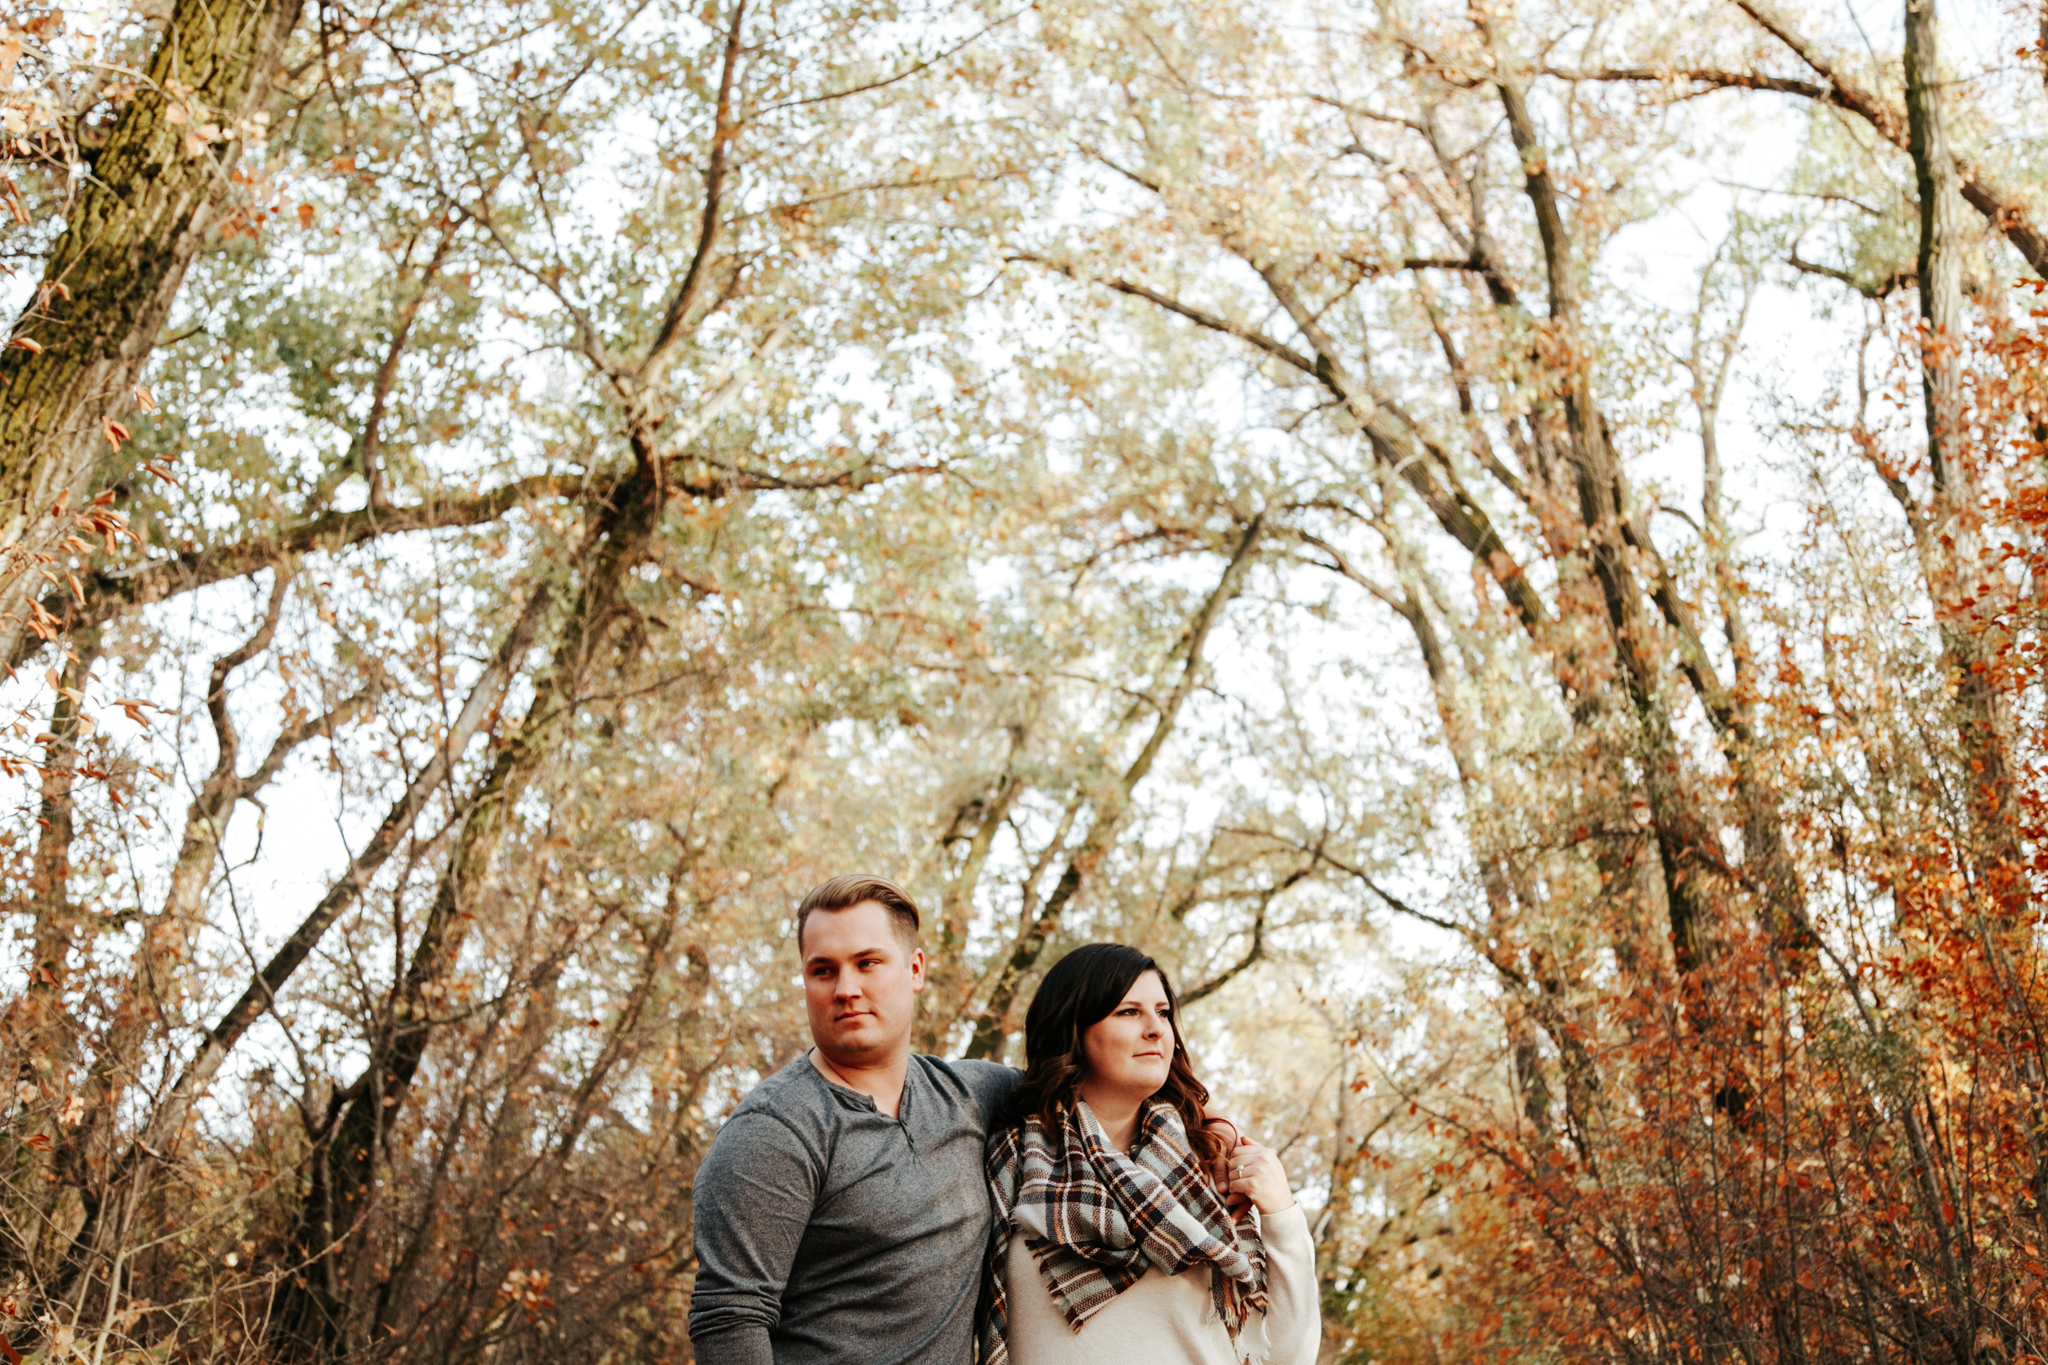 lethbridge-photographer-love-and-be-loved-photography-christy-bryan-fall-autumn-engagement-photo-image-picture-17.jpg